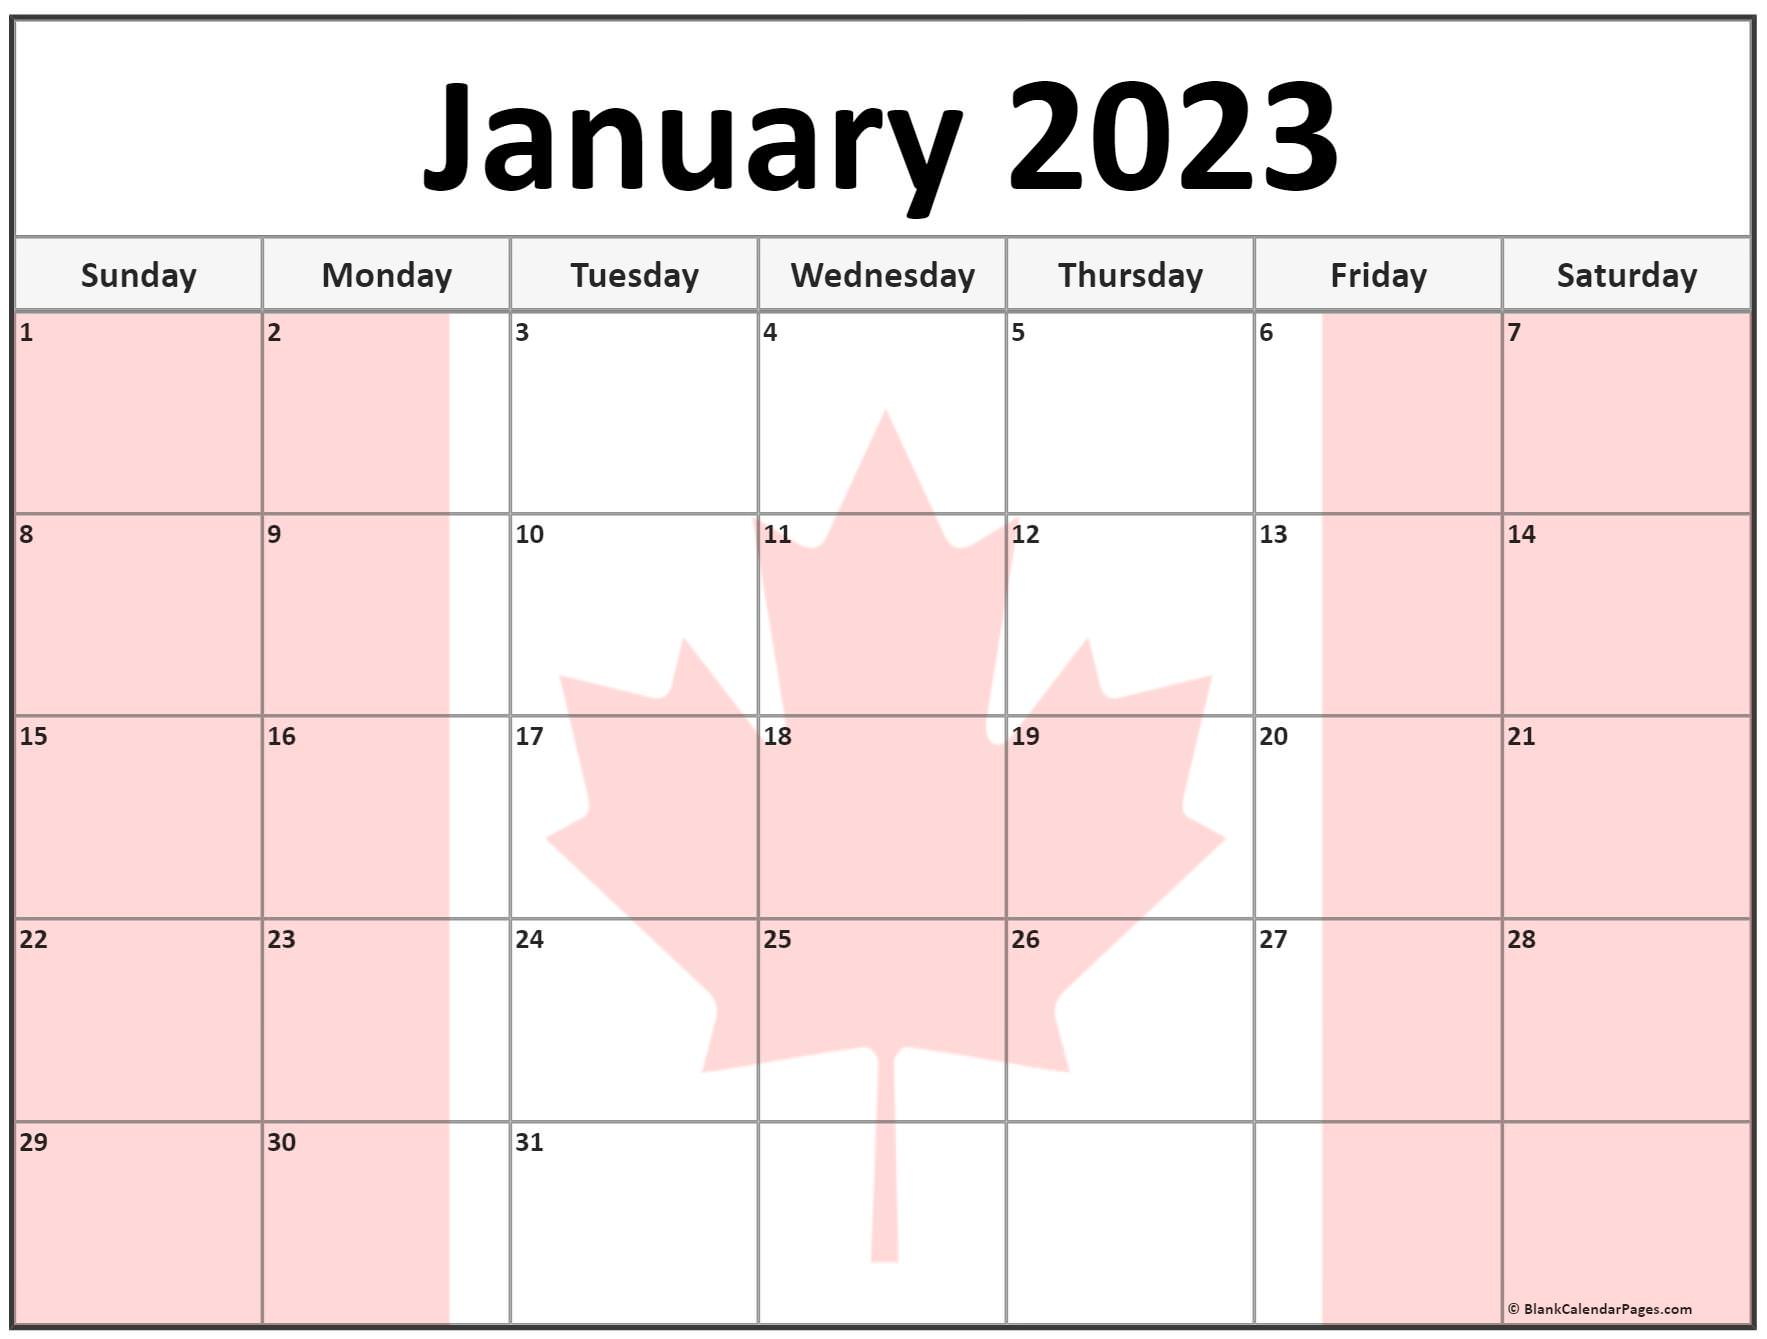 Collection Of January 2023 Photo Calendars With Image Filters